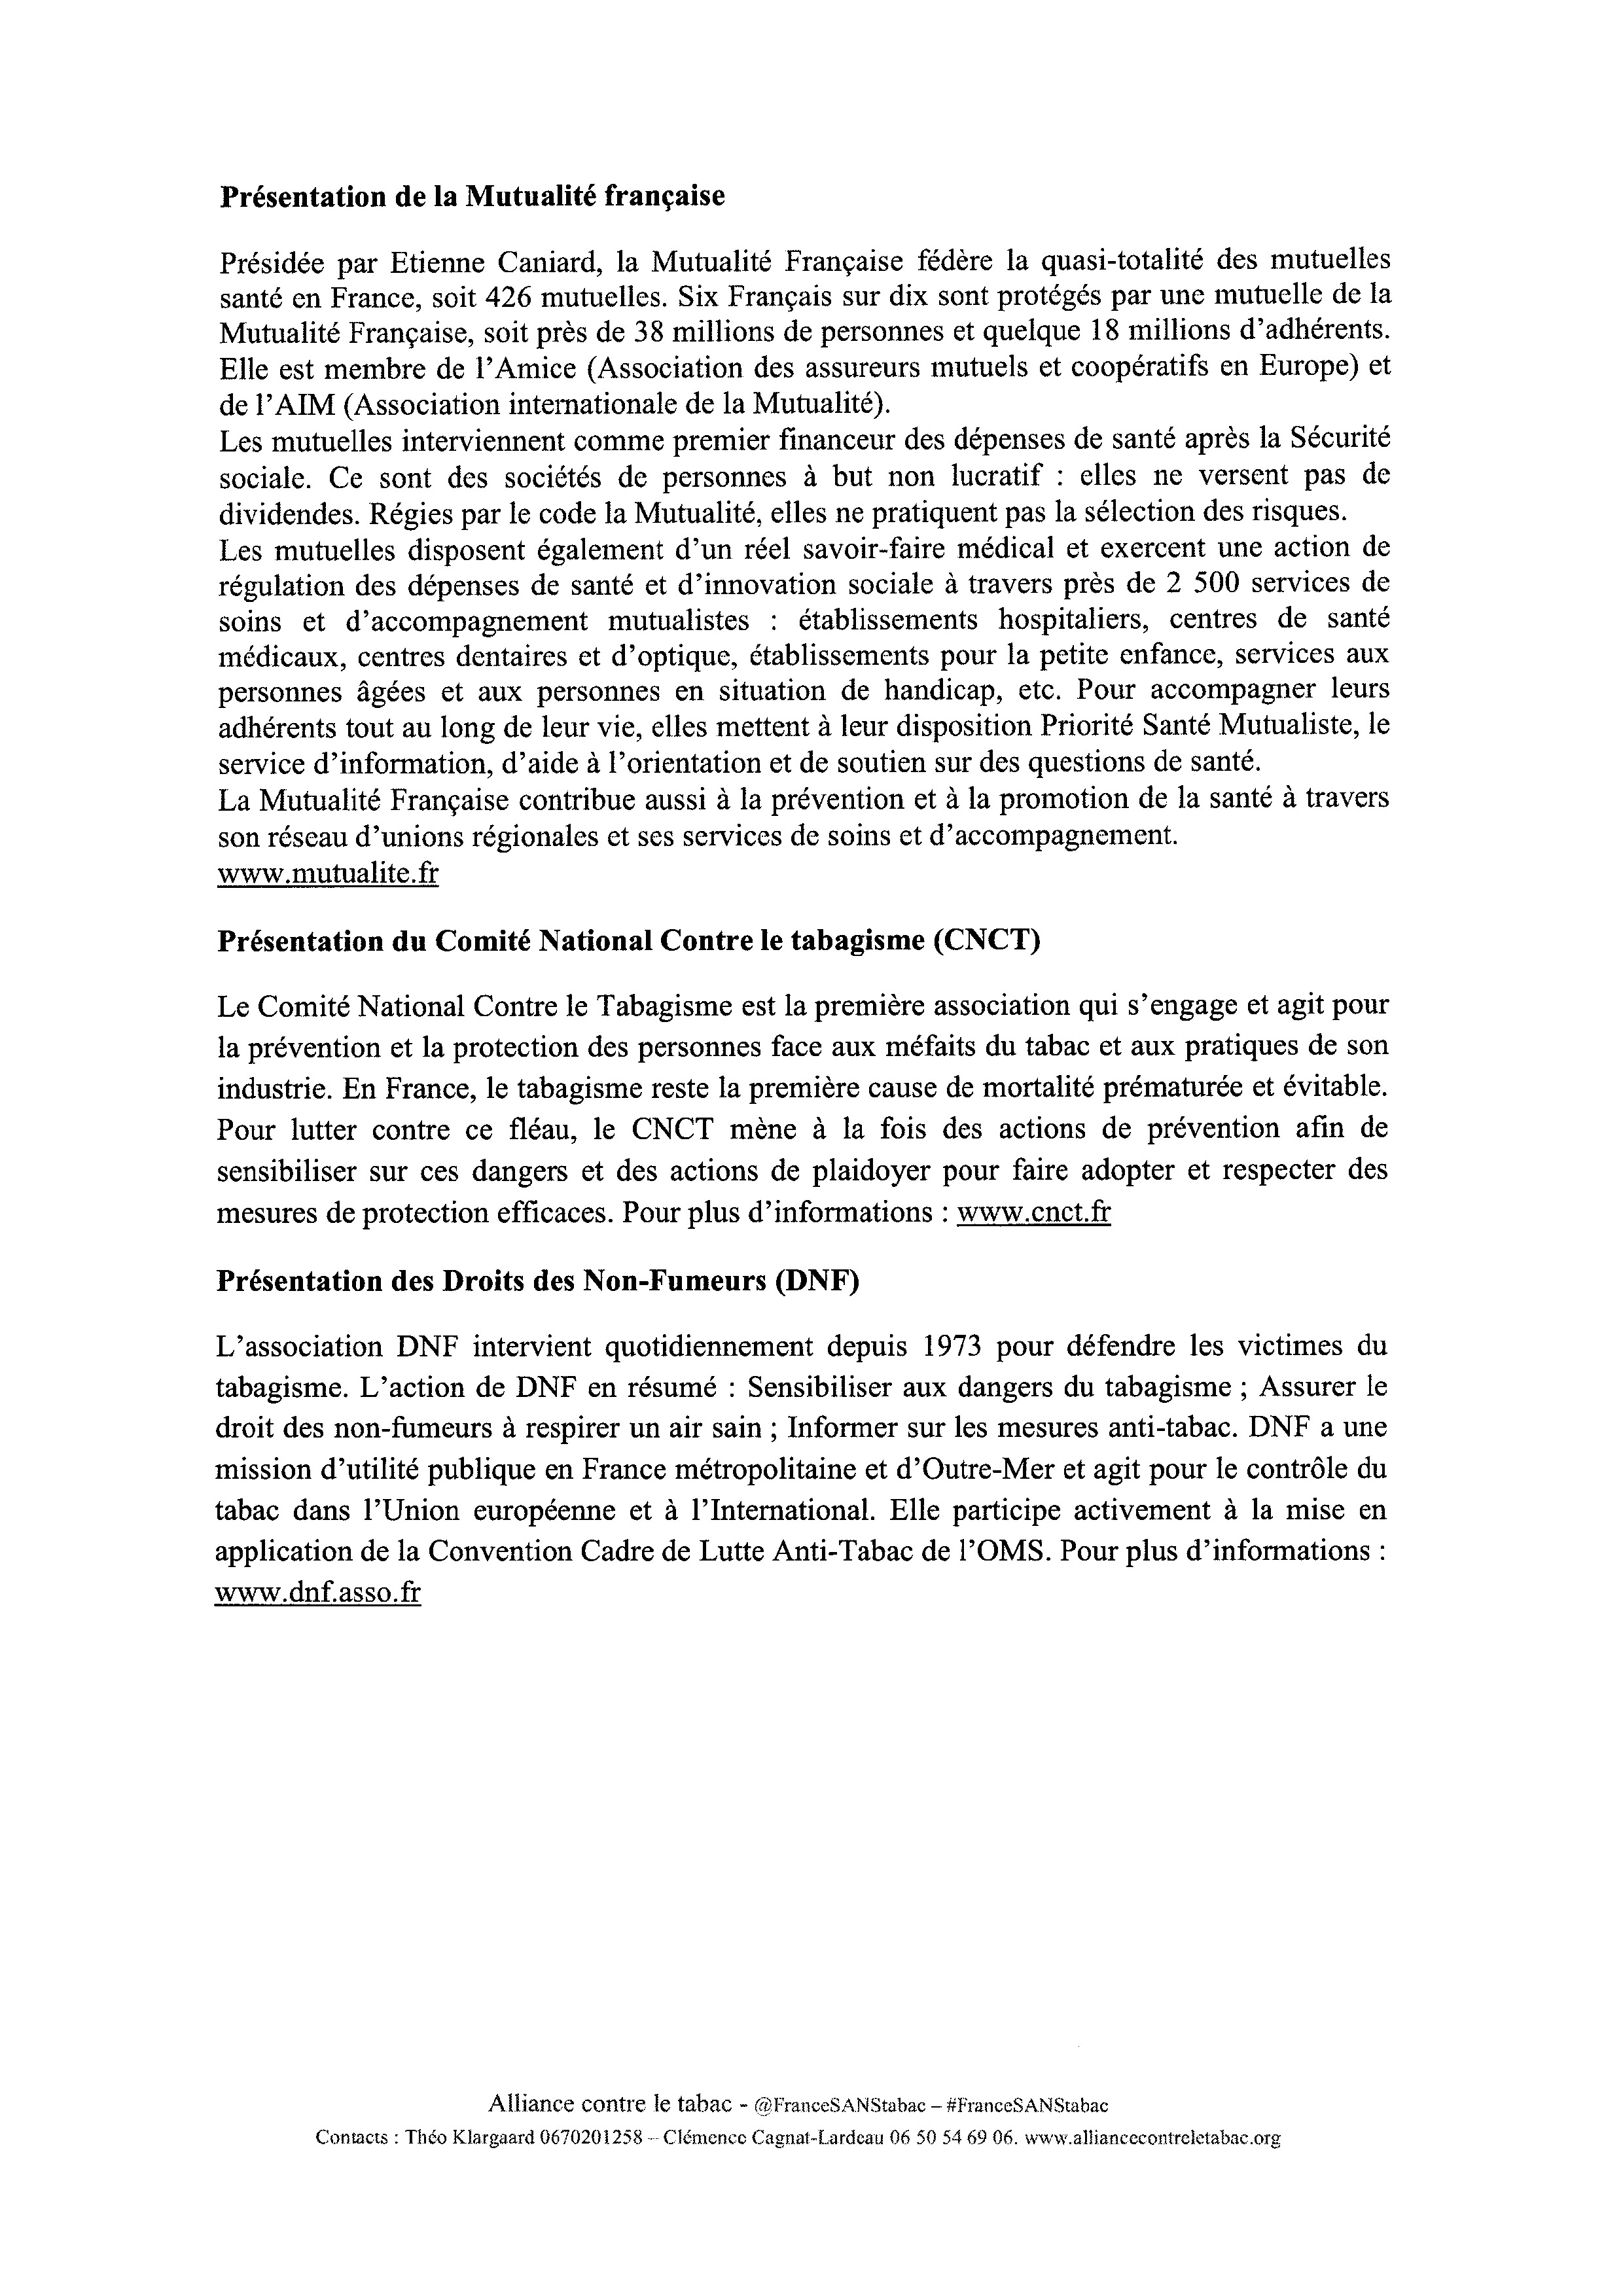 Alliance-DP_dossier-point-presse-lycees-sans-tabac-27avr2016_Page_06.jpg